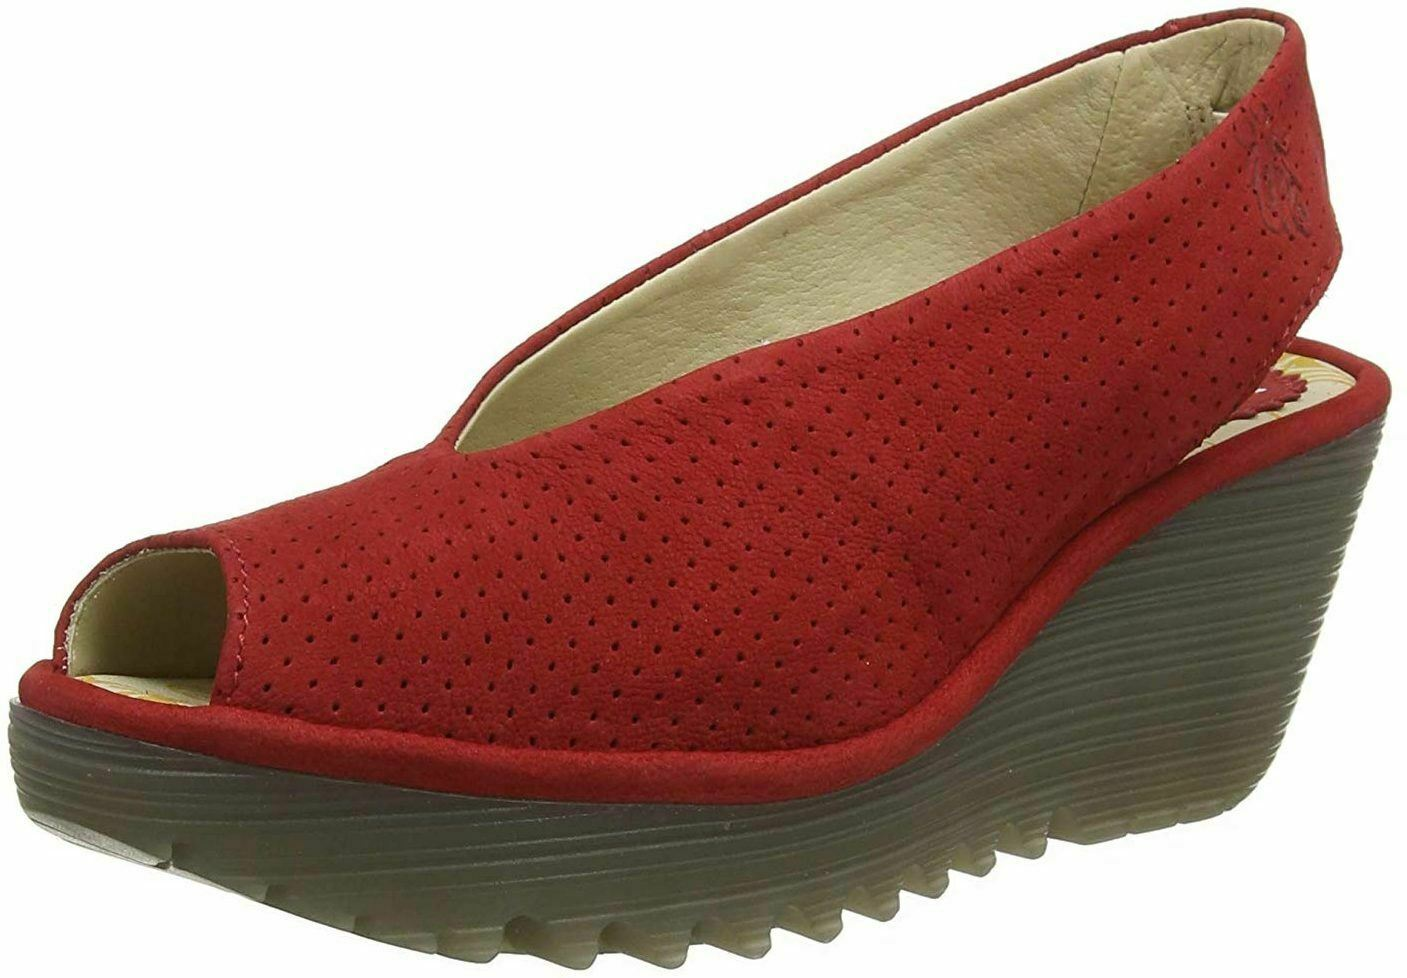 Fly london Yazu736fly Red Womens Leather Wedge shoes